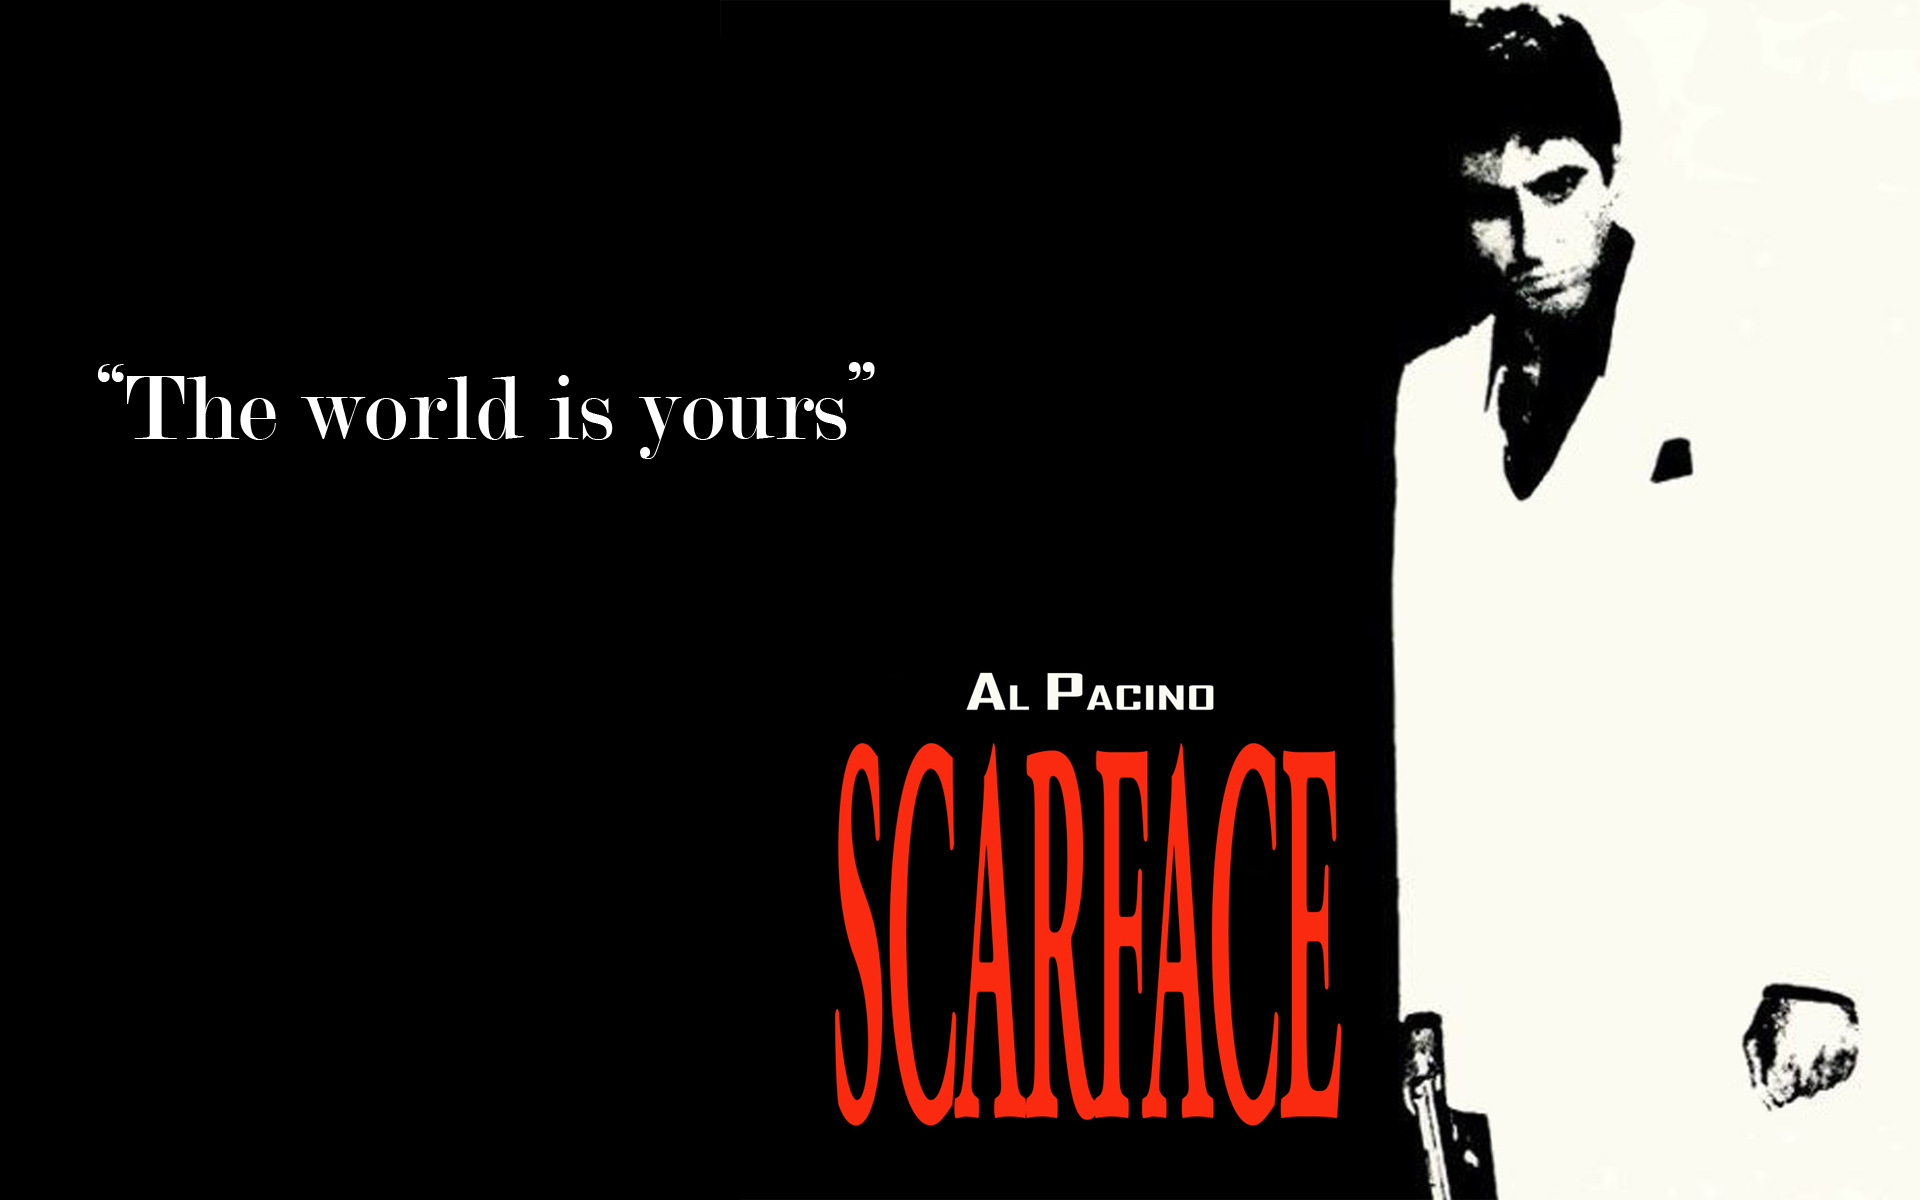 Pin Scarface Wallpaper 1920x1200